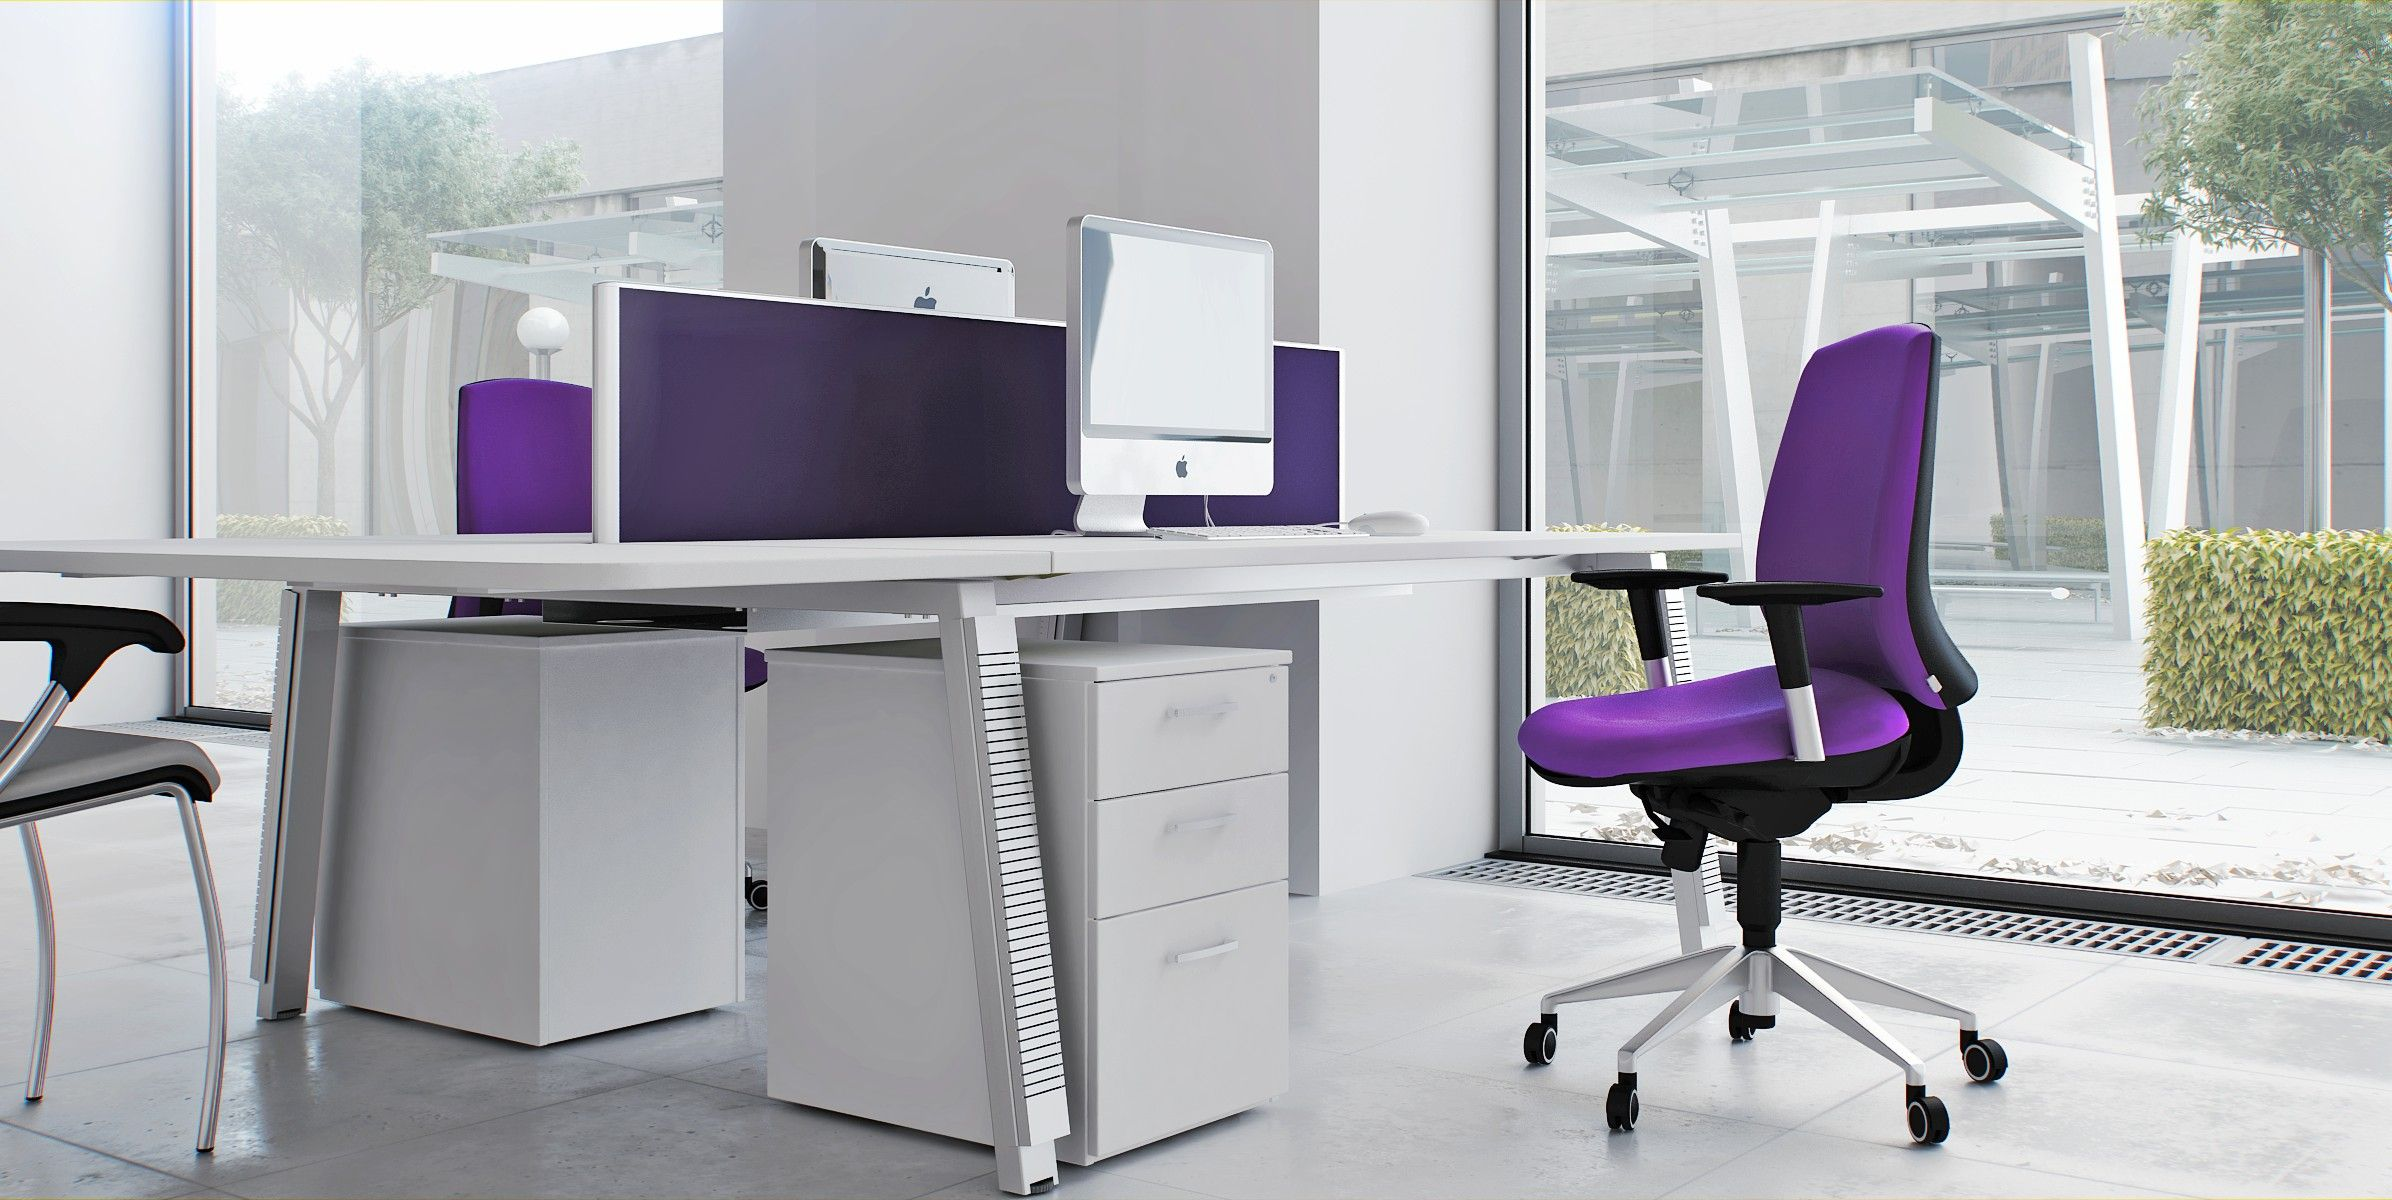 Captivating modern office chair with soft purple fabric for Best modern offices